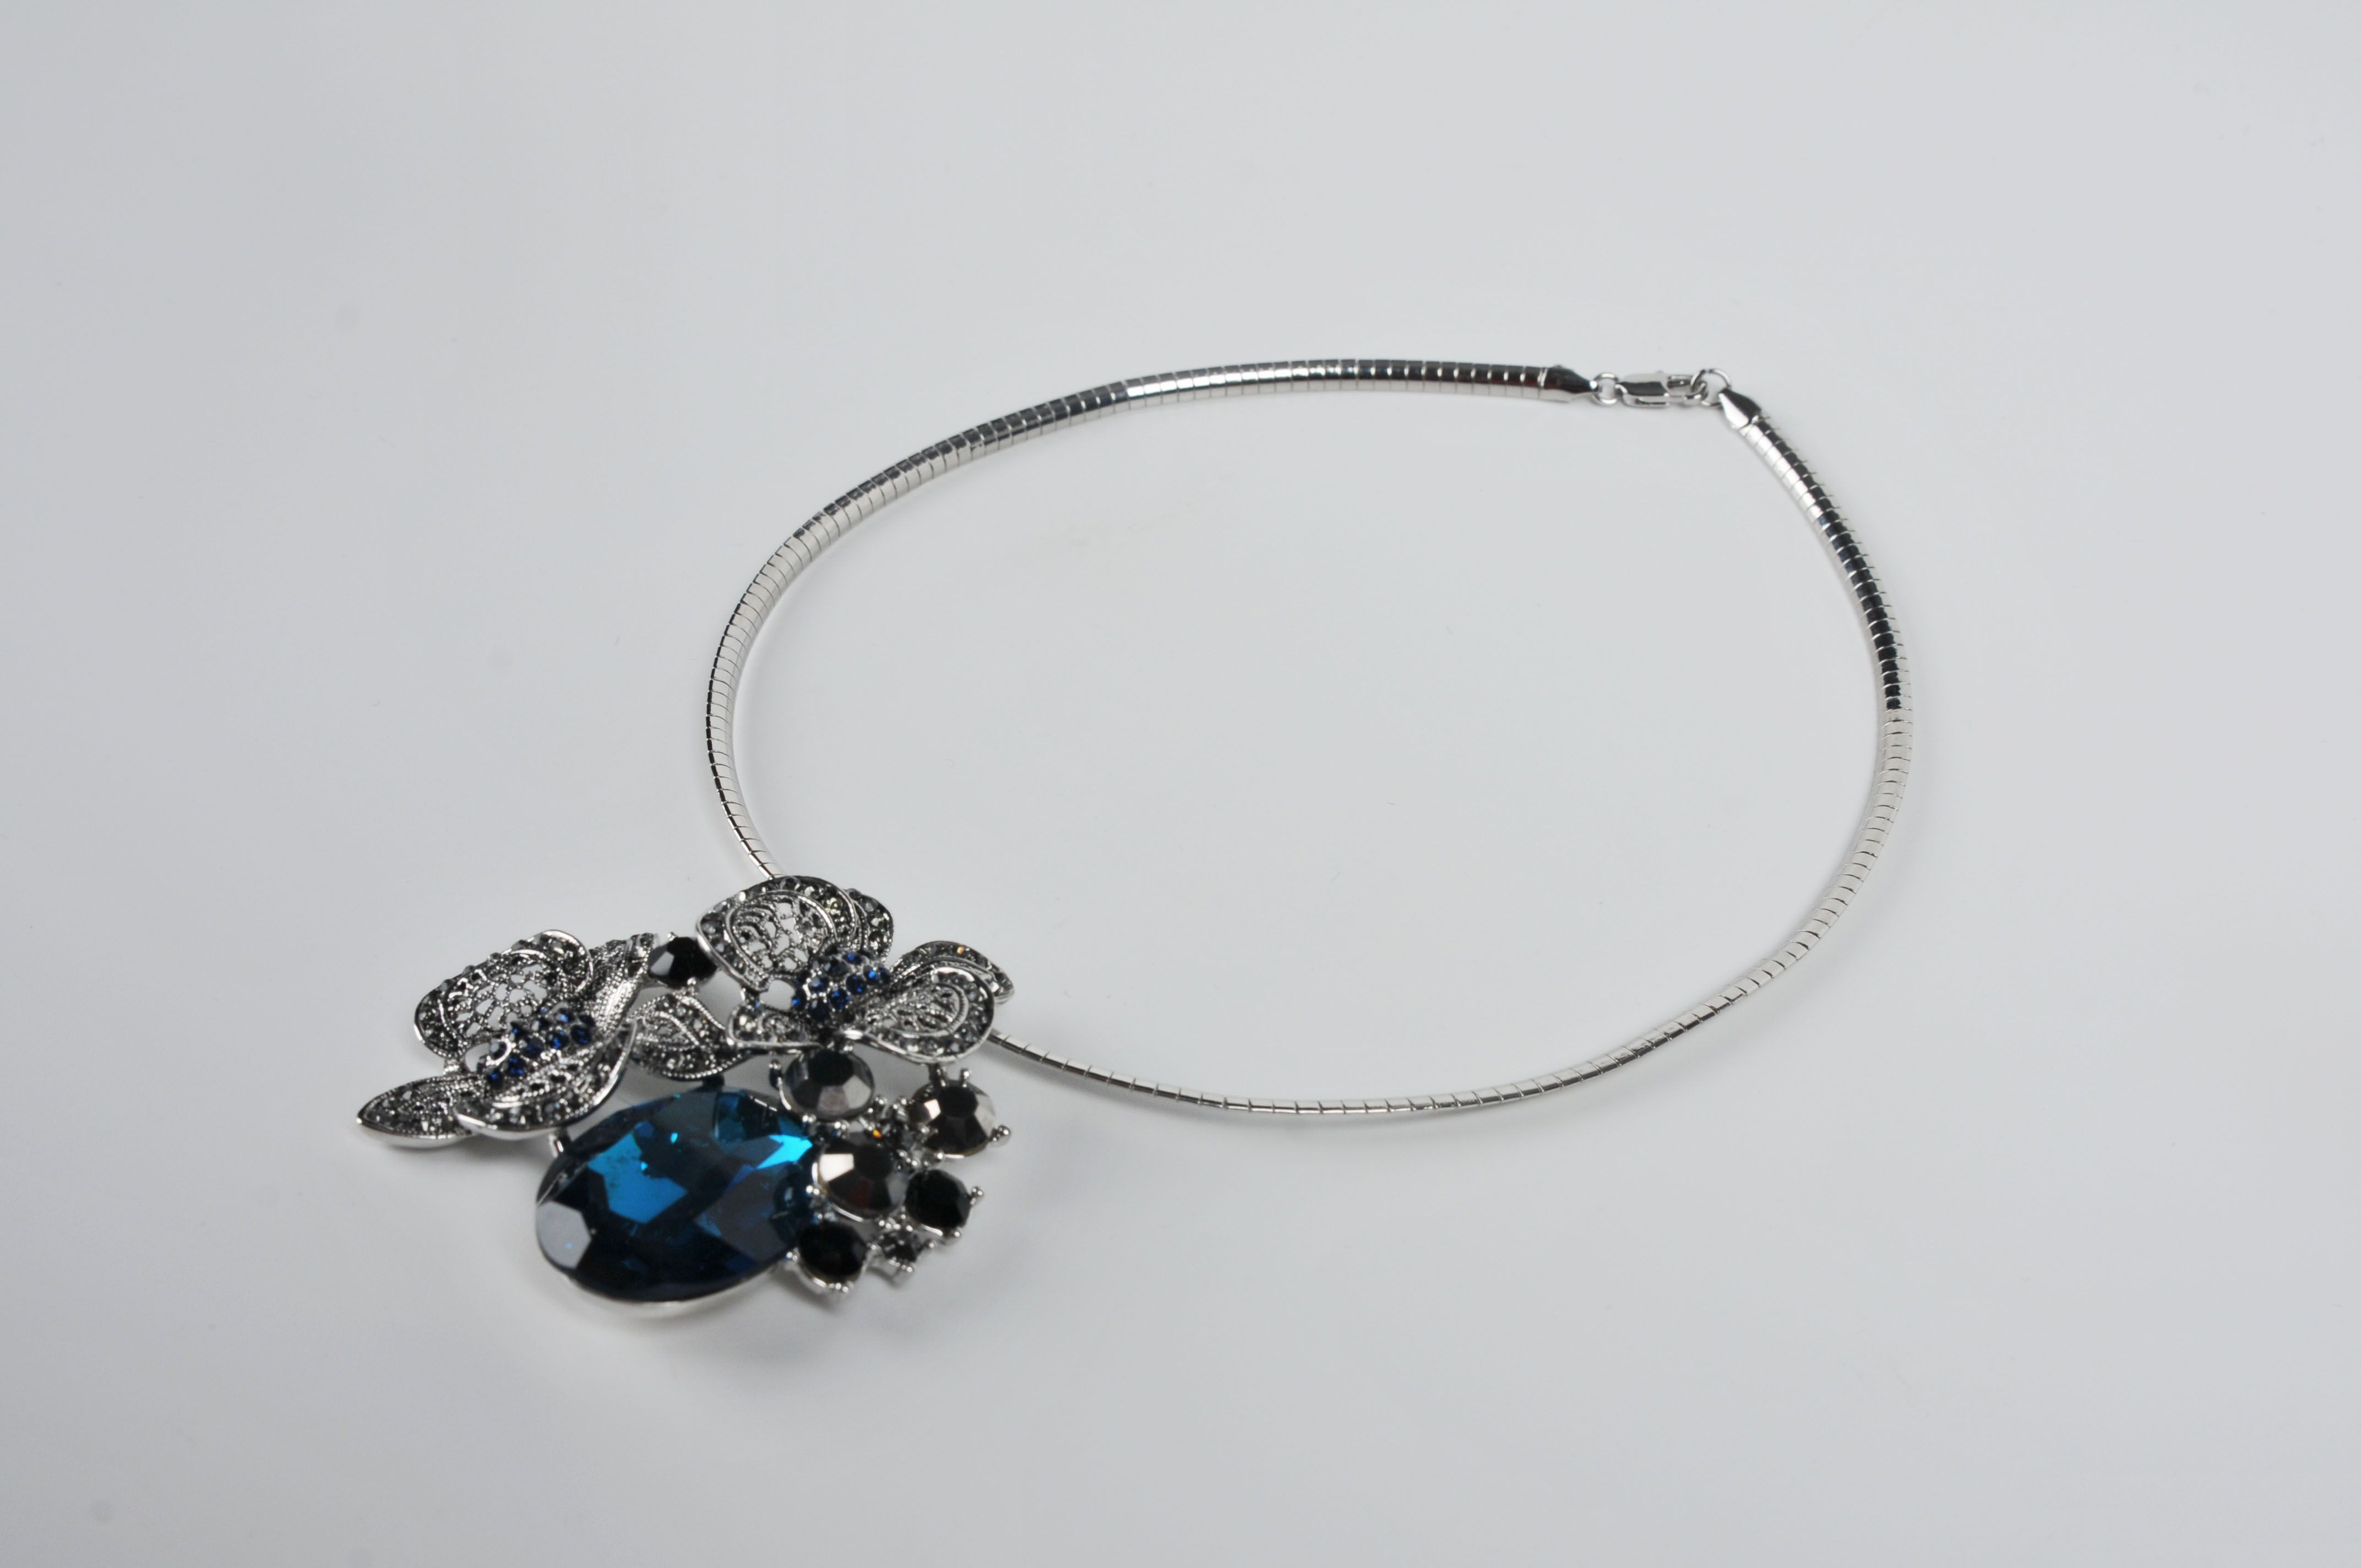 ADELAQUEEN Sliver Alloy And Synthetic Blue Crystal Jewelry with Delicacy Flower Pendant